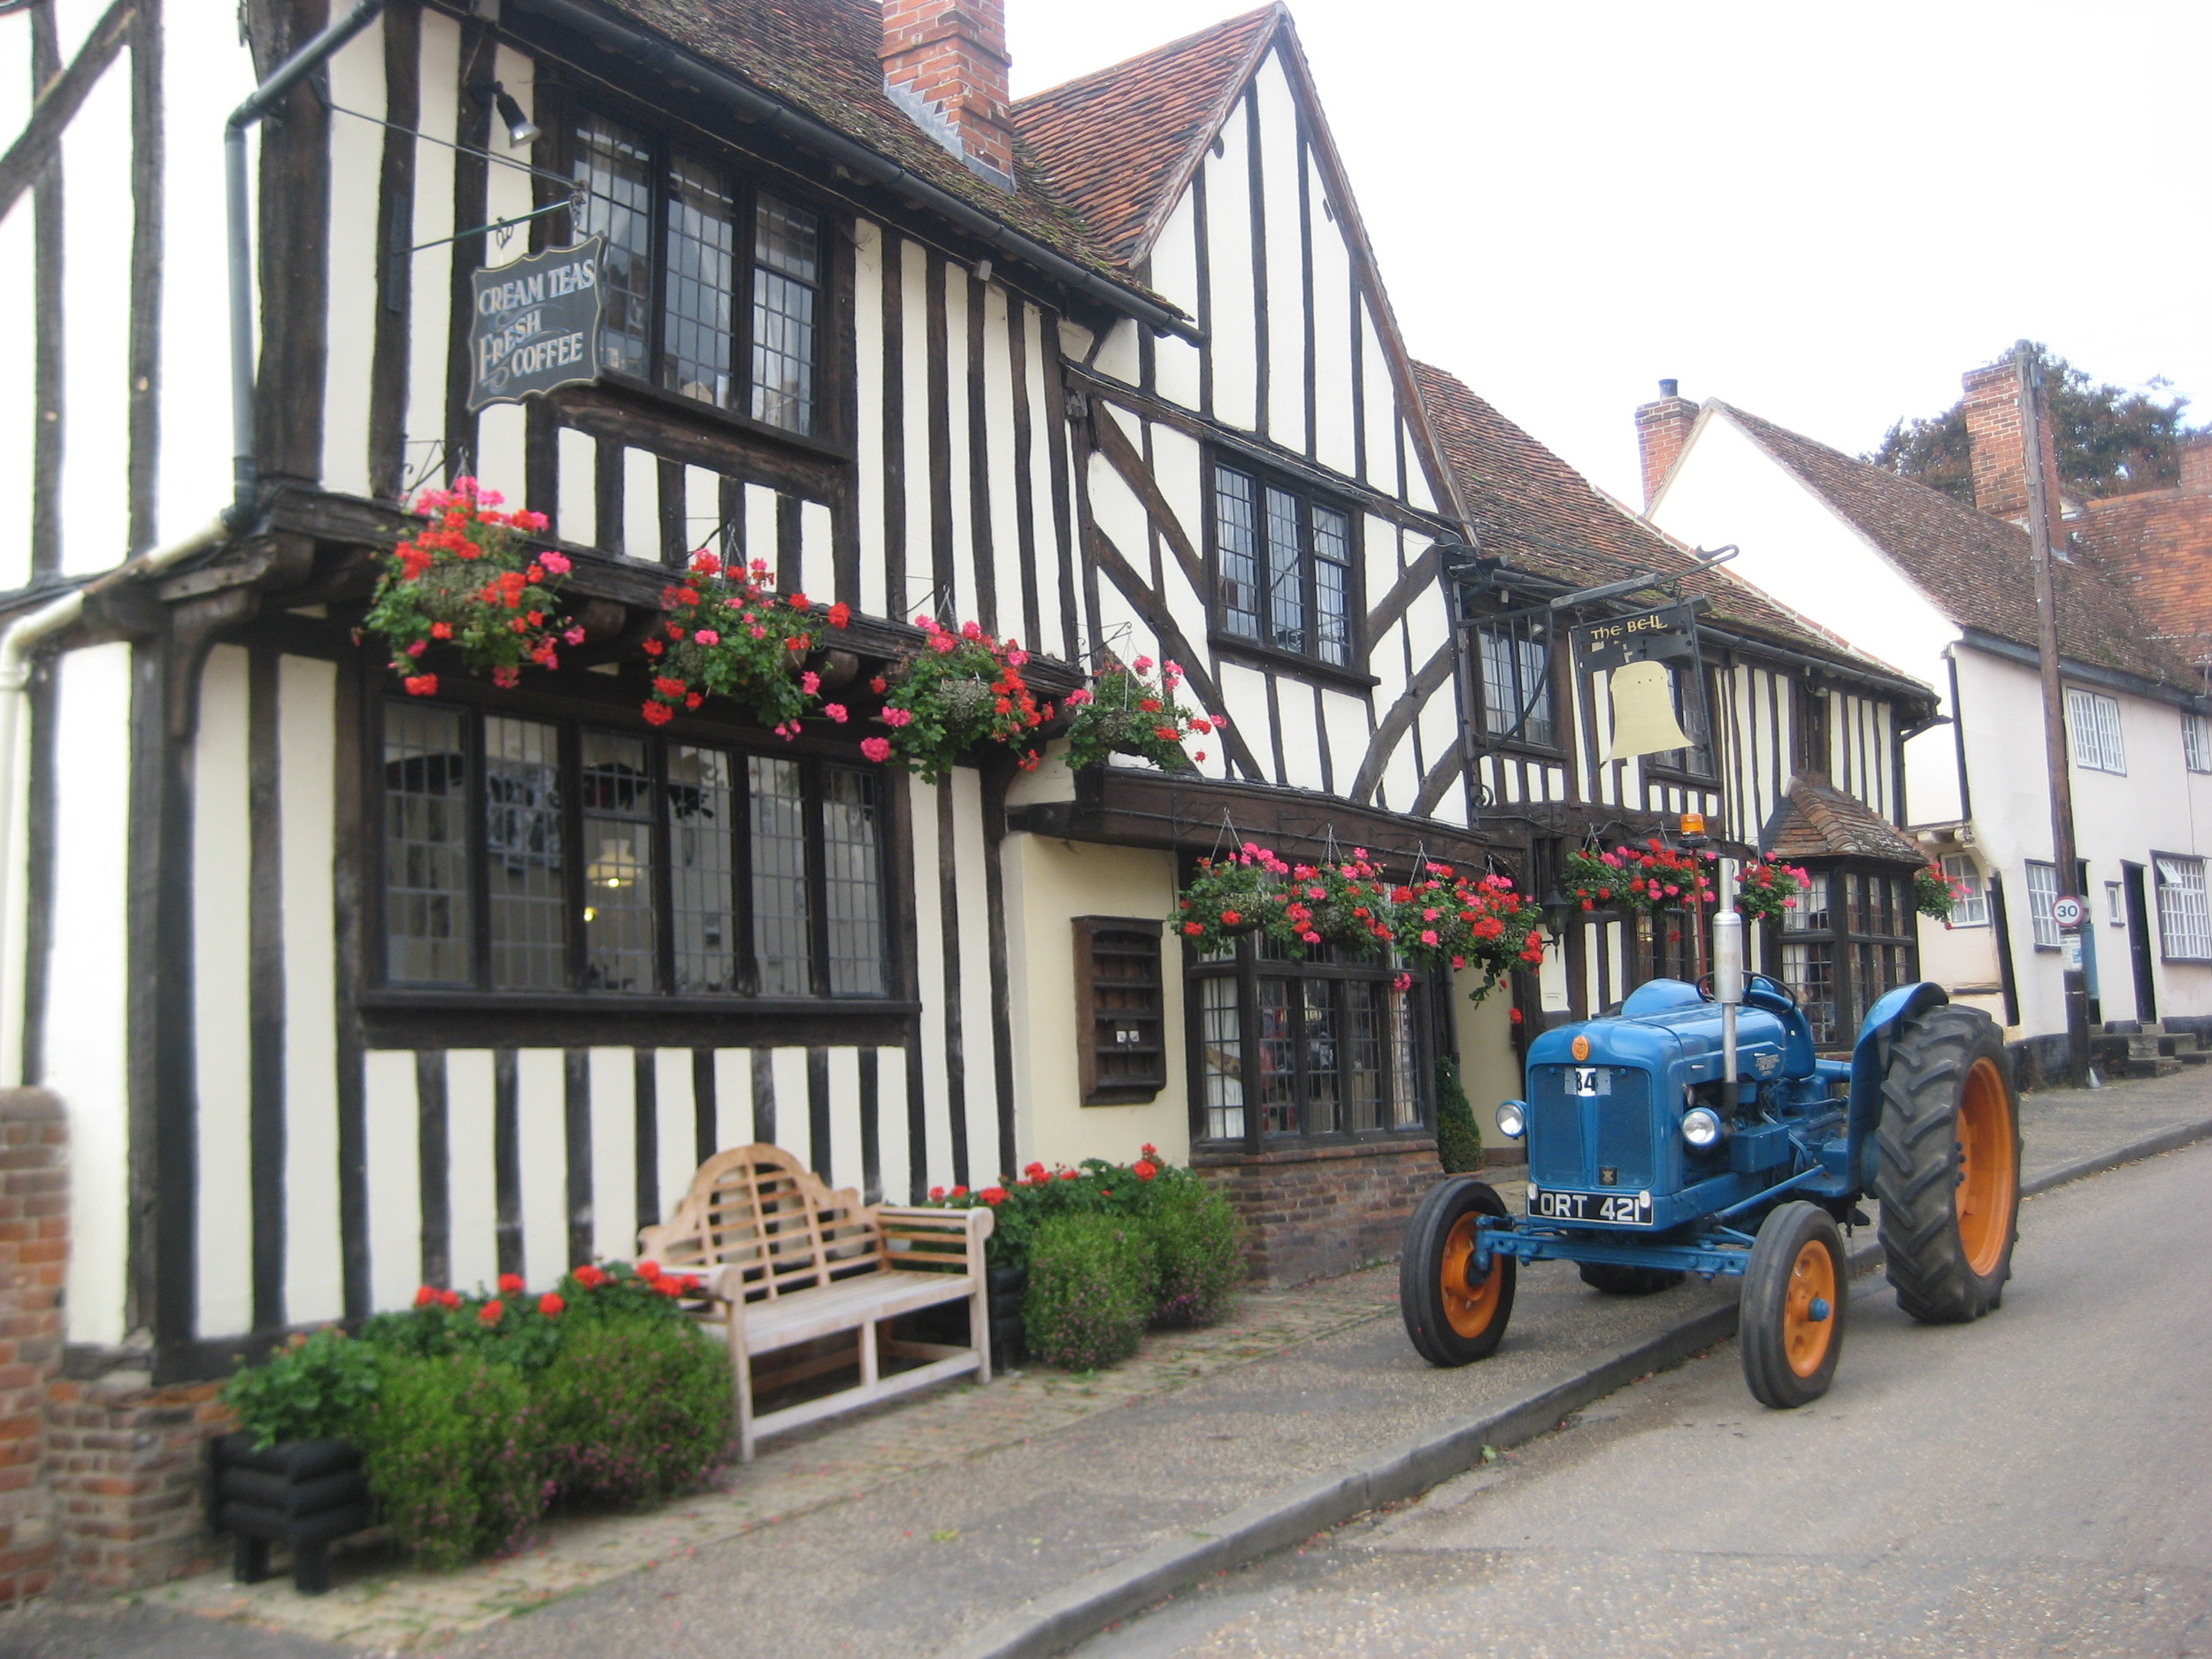 Lunch stop for a local farmer at The Bell in Kersey